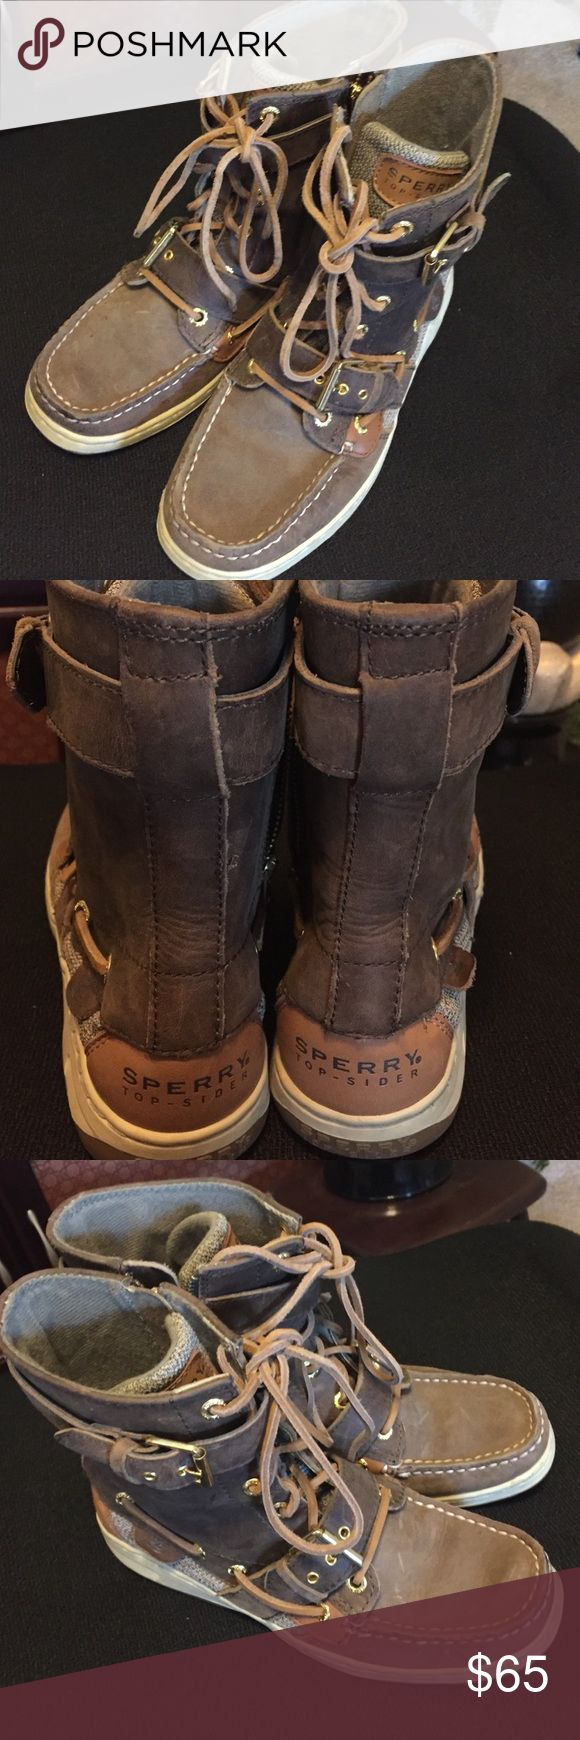 Sperry Top Sider High Tops Size 6 Brown sperrys. Angelfish style high tops. in excellent condition.  zip up on sides Sperry Top-Sider Shoes Sneakers